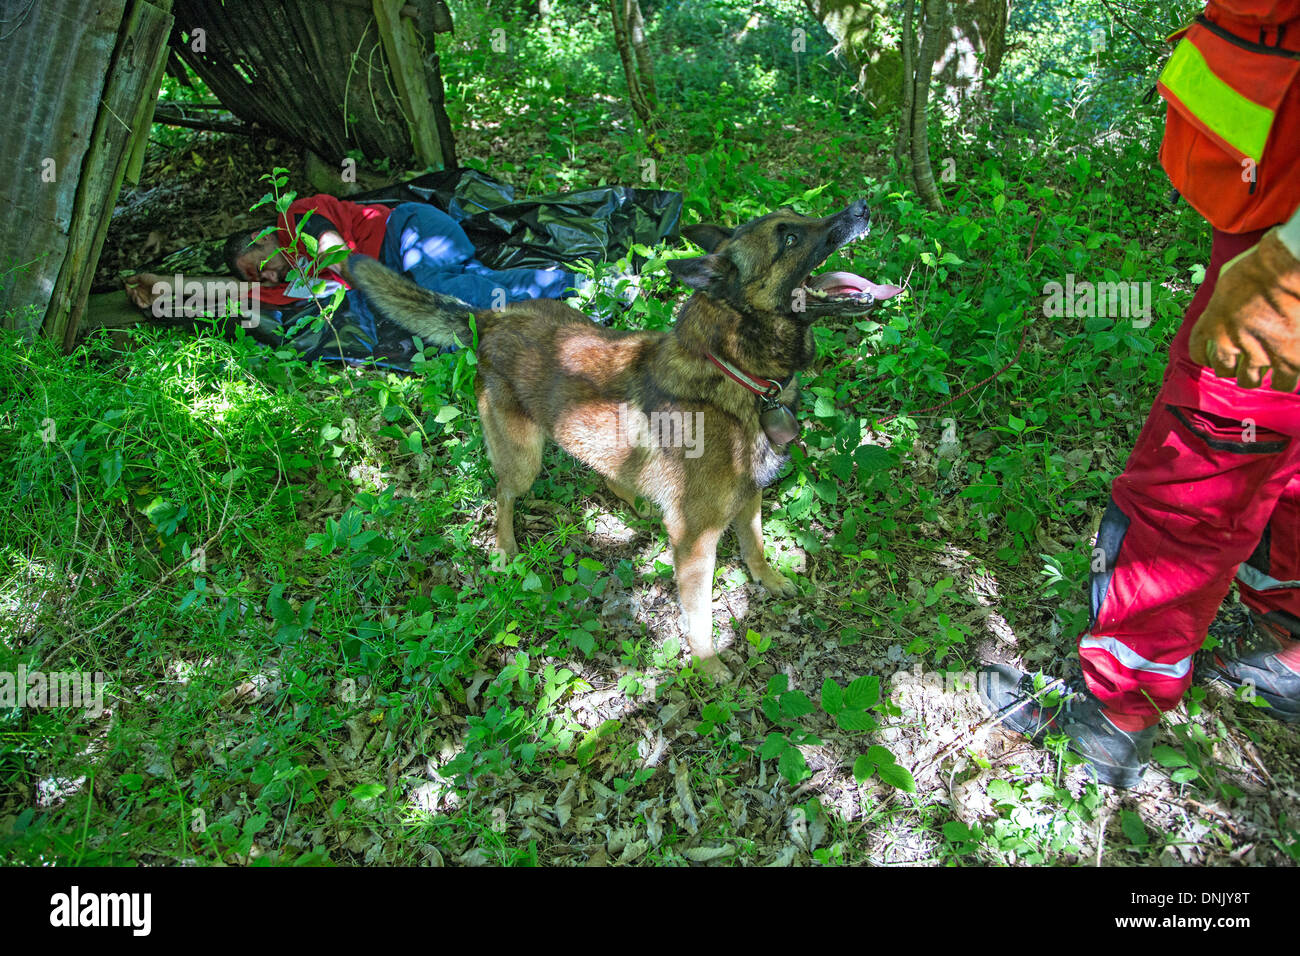 FIRE DEPARTMENT RESCUE DOG THAT HAS JUST SHOWN ITS MASTER A VICTIM, SDE3 ECASC SECTION CHIEF TRAINING, FORMER QUARRIES OF GUICHEN, ILLE-ET-VILAINE (35), FRANCE - Stock Image